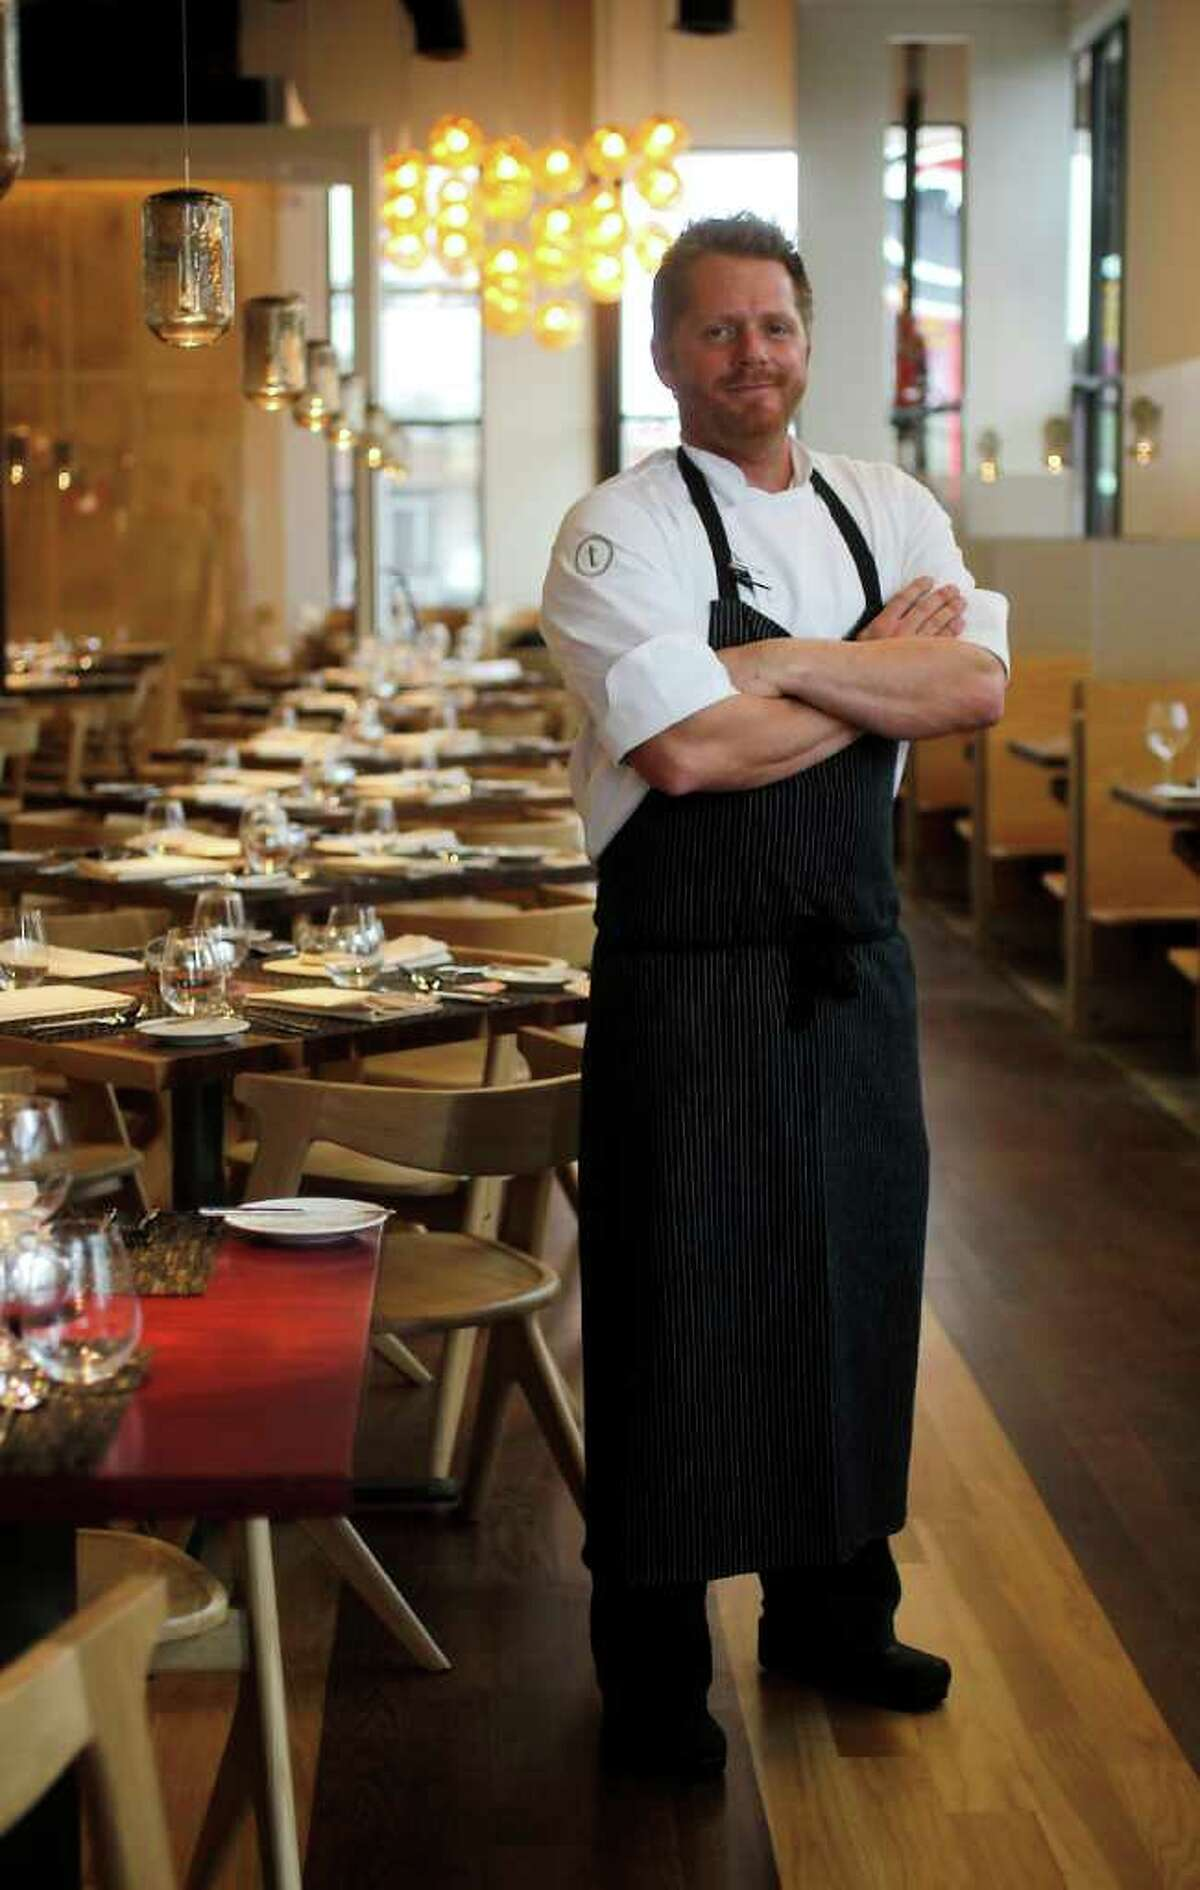 Triniti's executive chef Ryan Hildebrand is formerly of Textile. Triniti, which opened Dec. 24, is one of the city's hottest reservations.